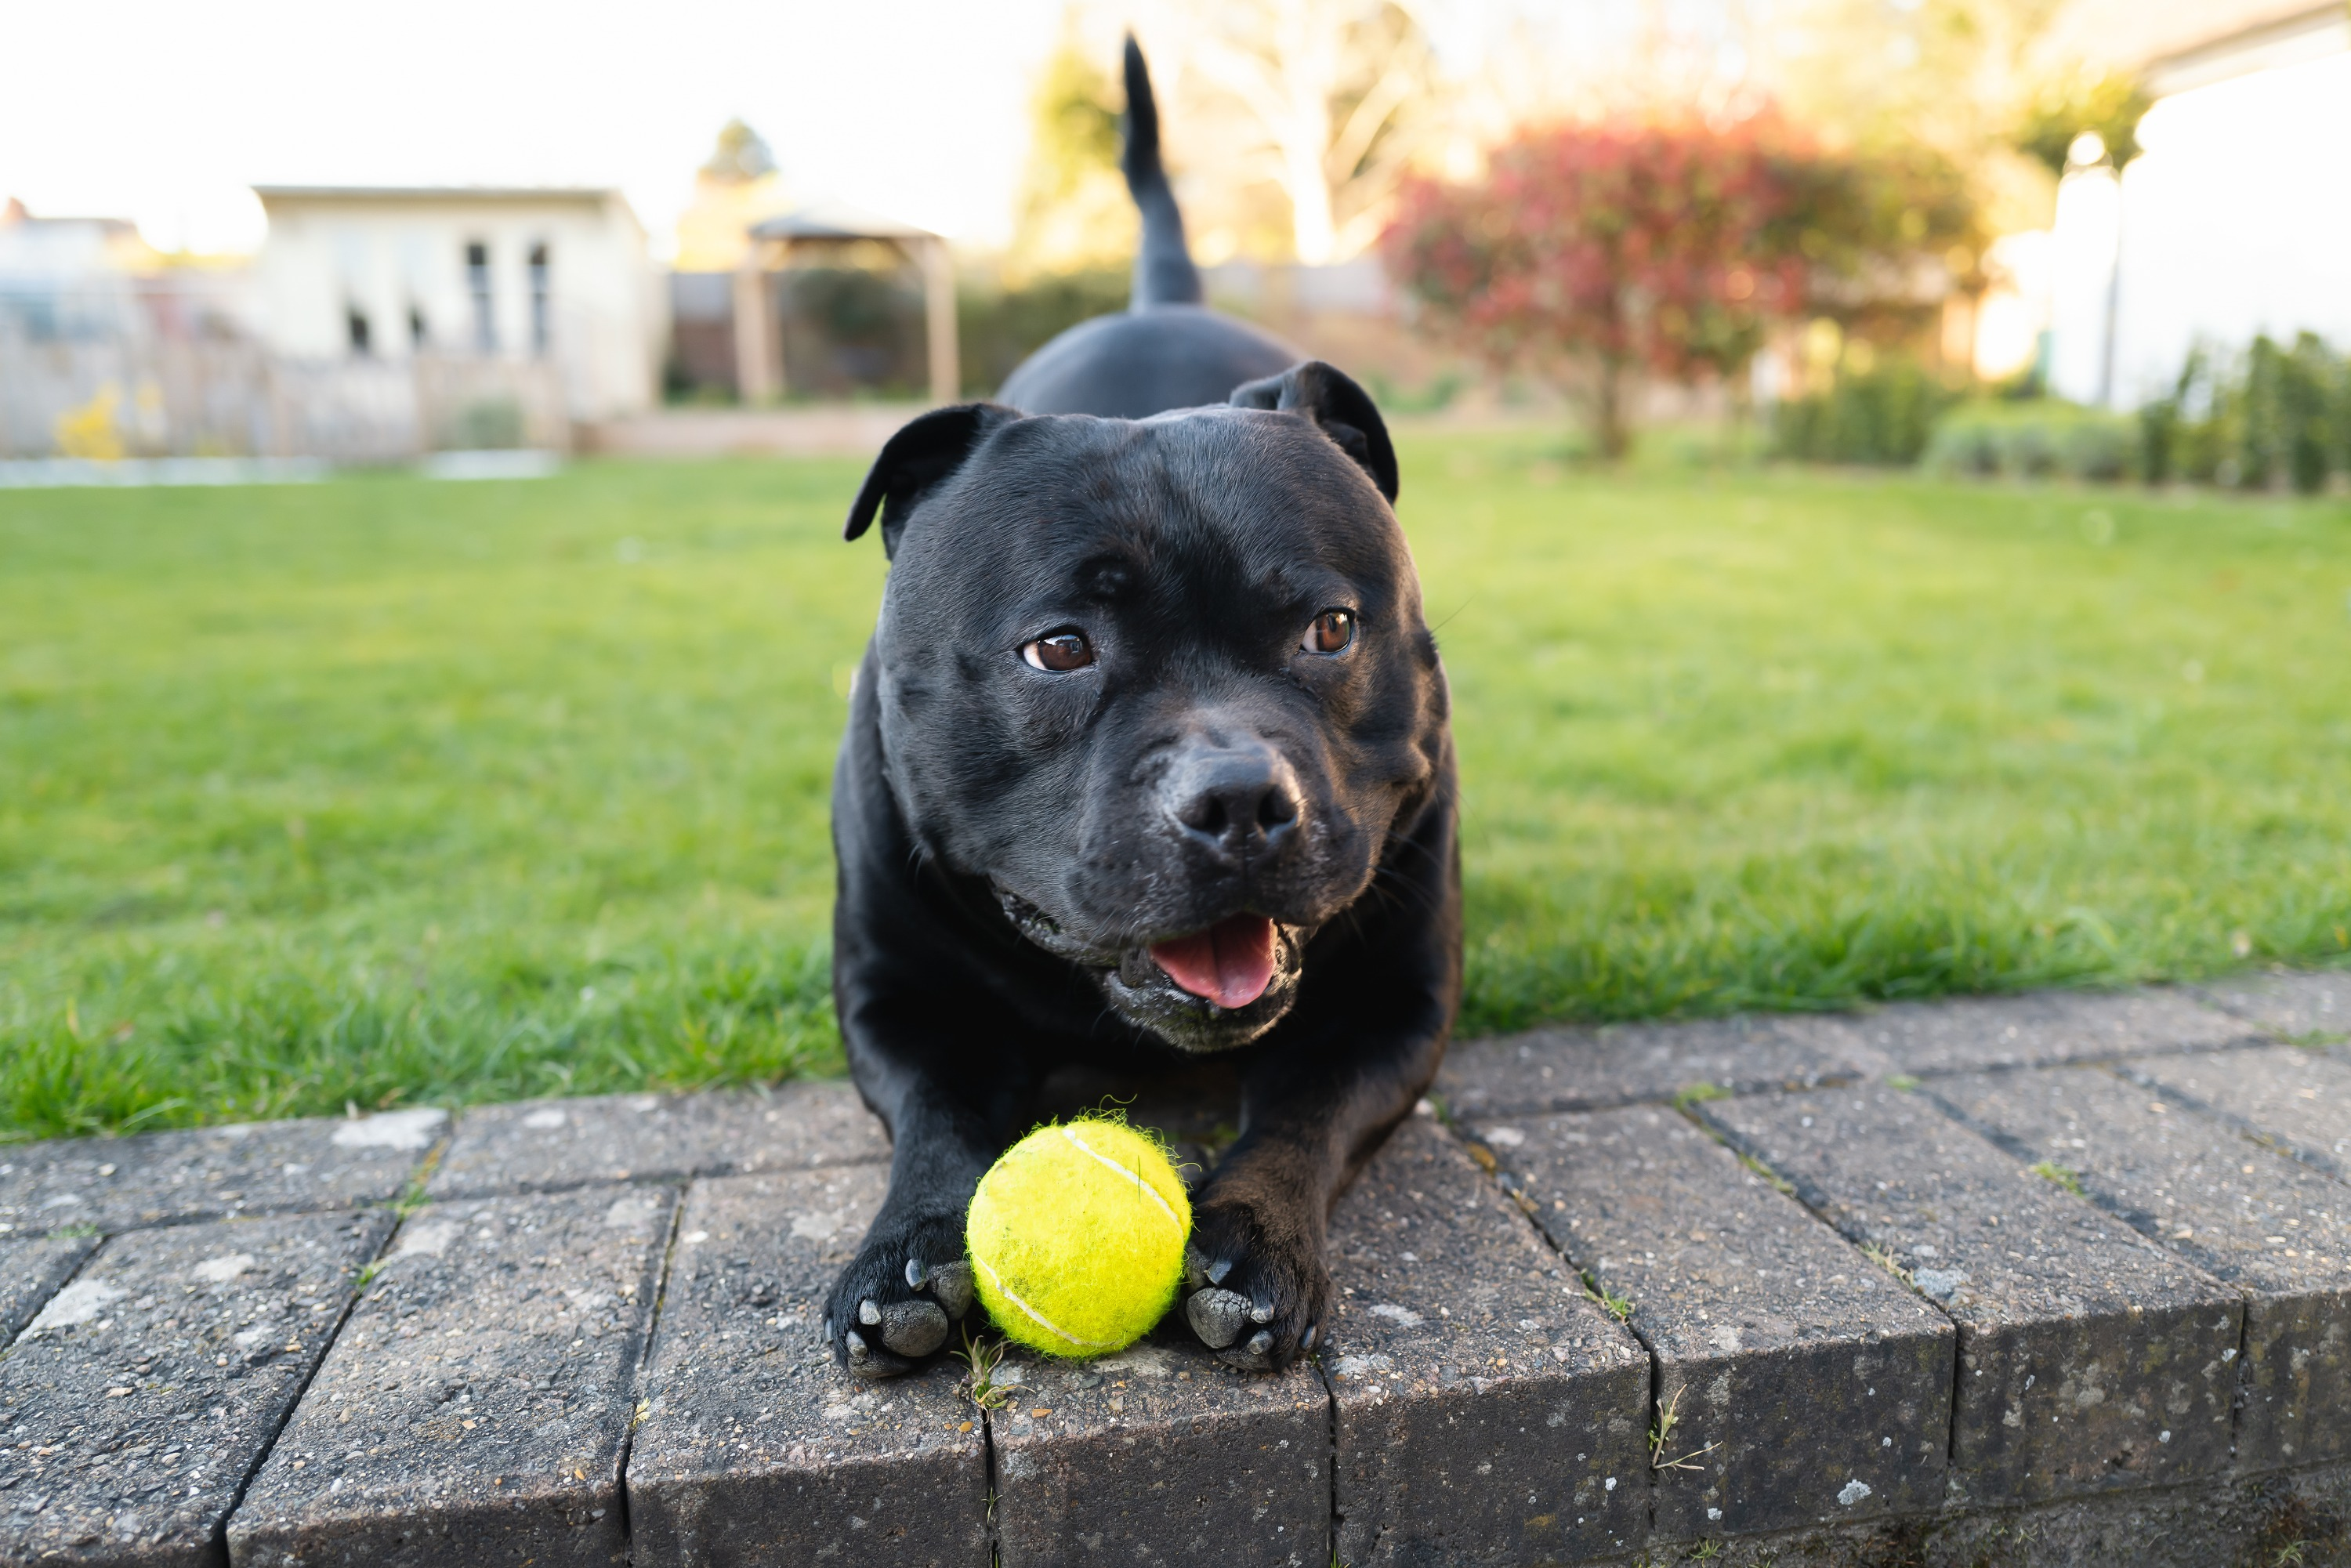 A black dog holding a yellow tennis ball between his front paws in the green backyard of a home.